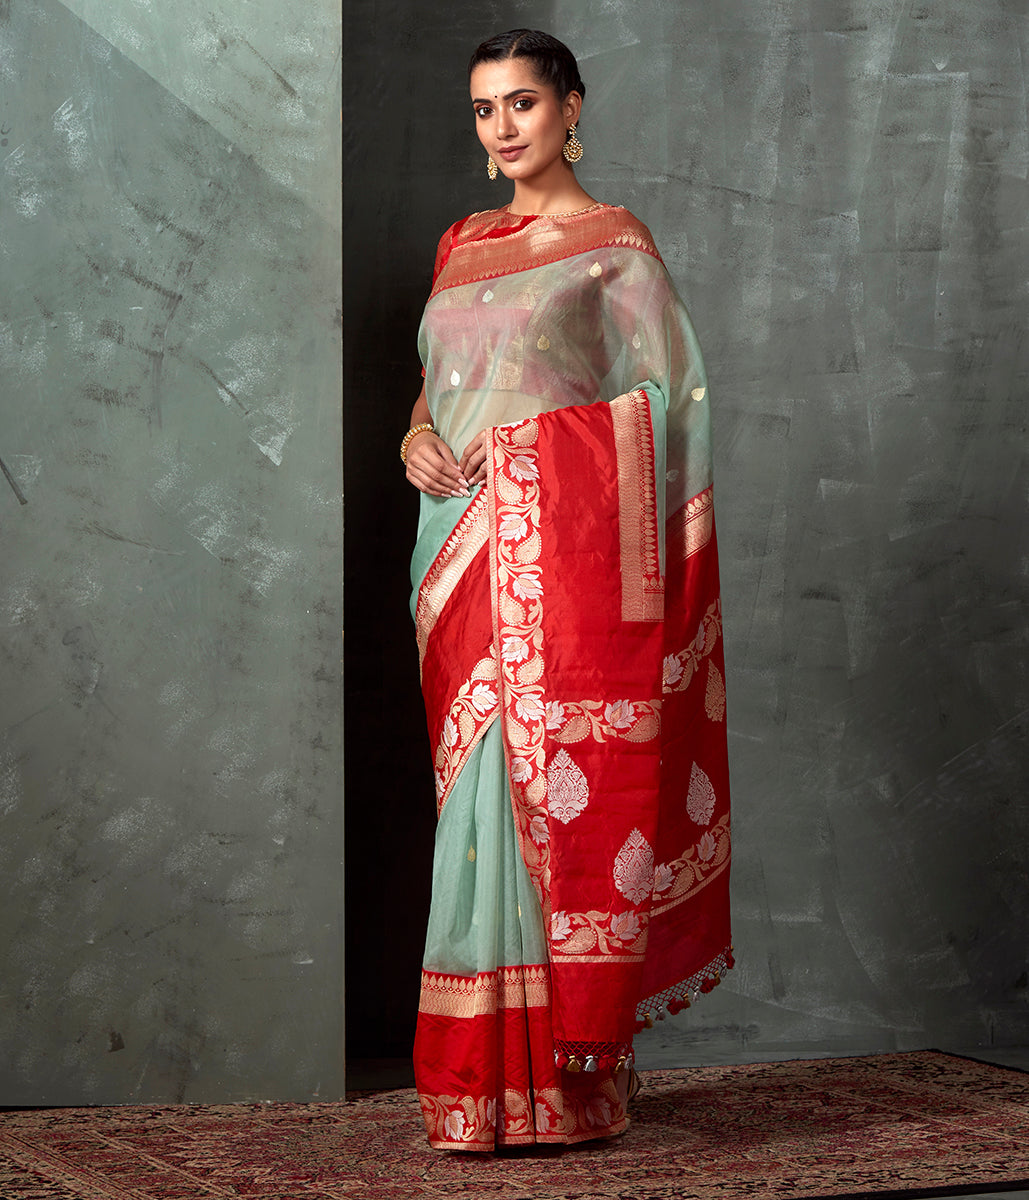 Handwoven Light Blue  Color Kora Saree with Red Border